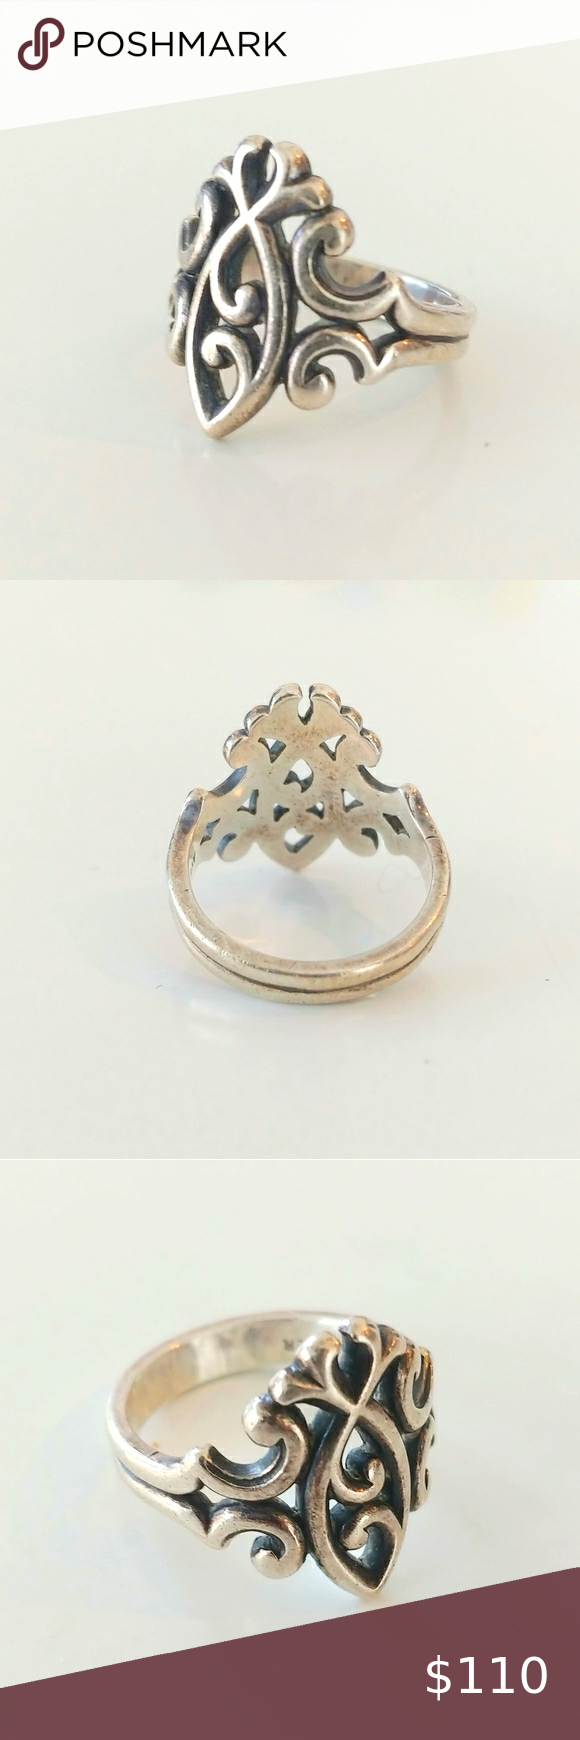 Check out this listing I just found on Poshmark: Retired James Avery Scrolled Ichthus Fish Ring. #shopmycloset #poshmark #shopping #style #pinitforlater #James Avery #Jewelry